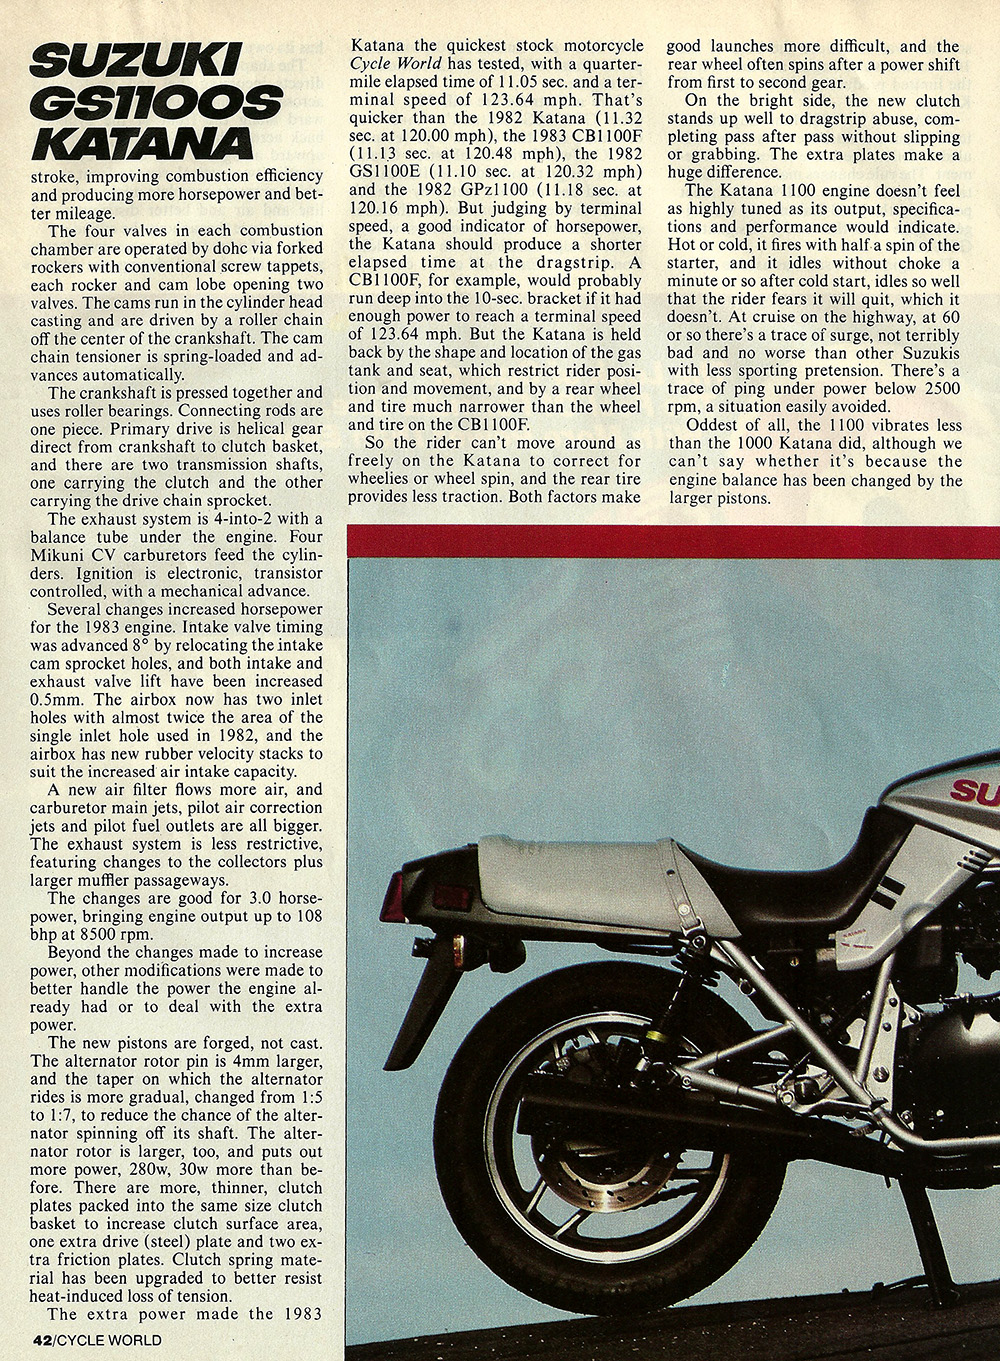 1983 Suzuki GS1100 S Katana road test 03.jpg